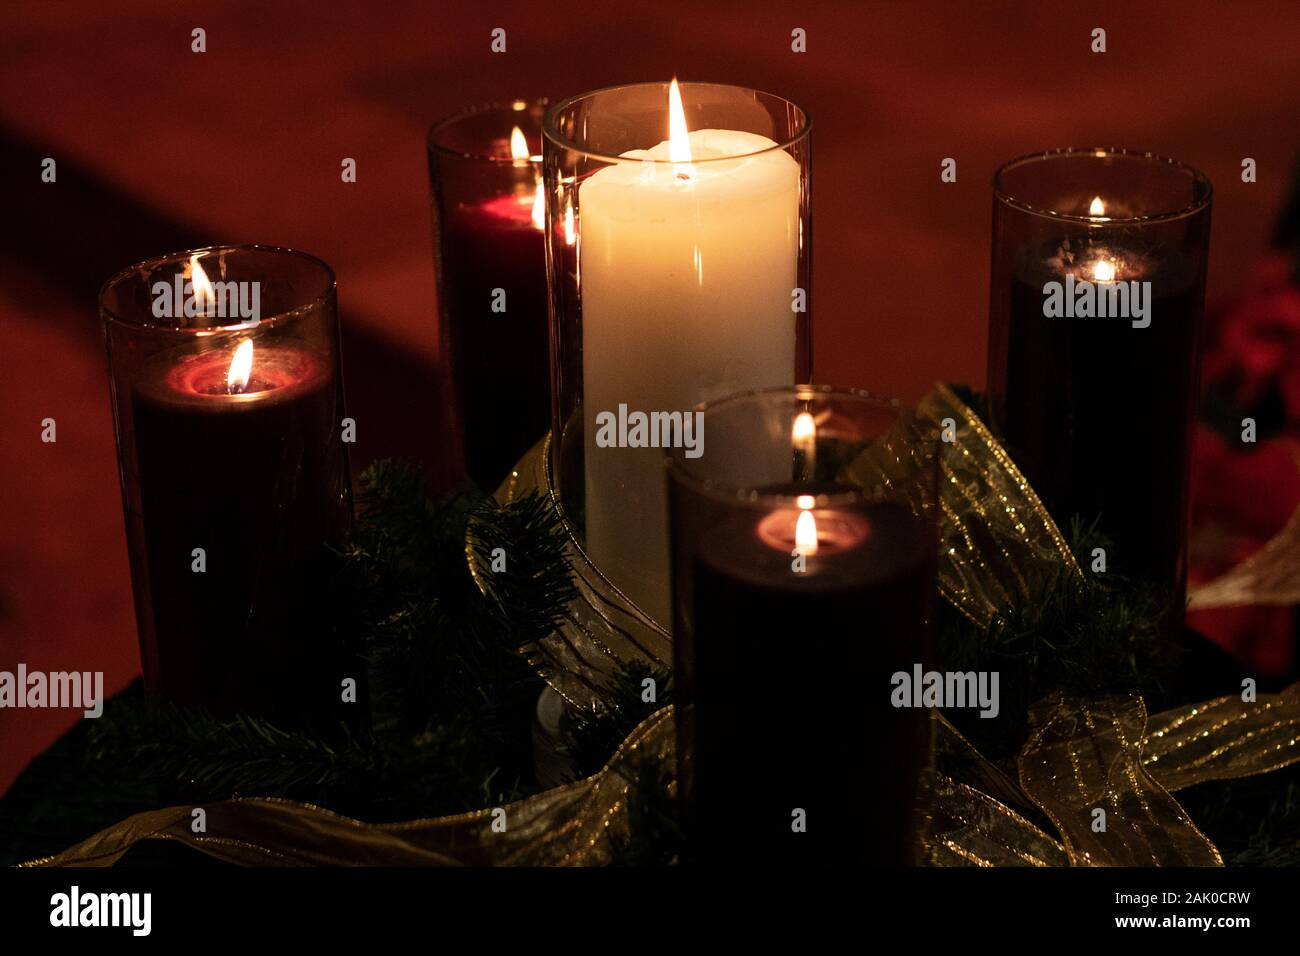 Purple Advent Candles And The White Christ Candle In The Center Burning In A Church On Christmas Eve Stock Photo Alamy